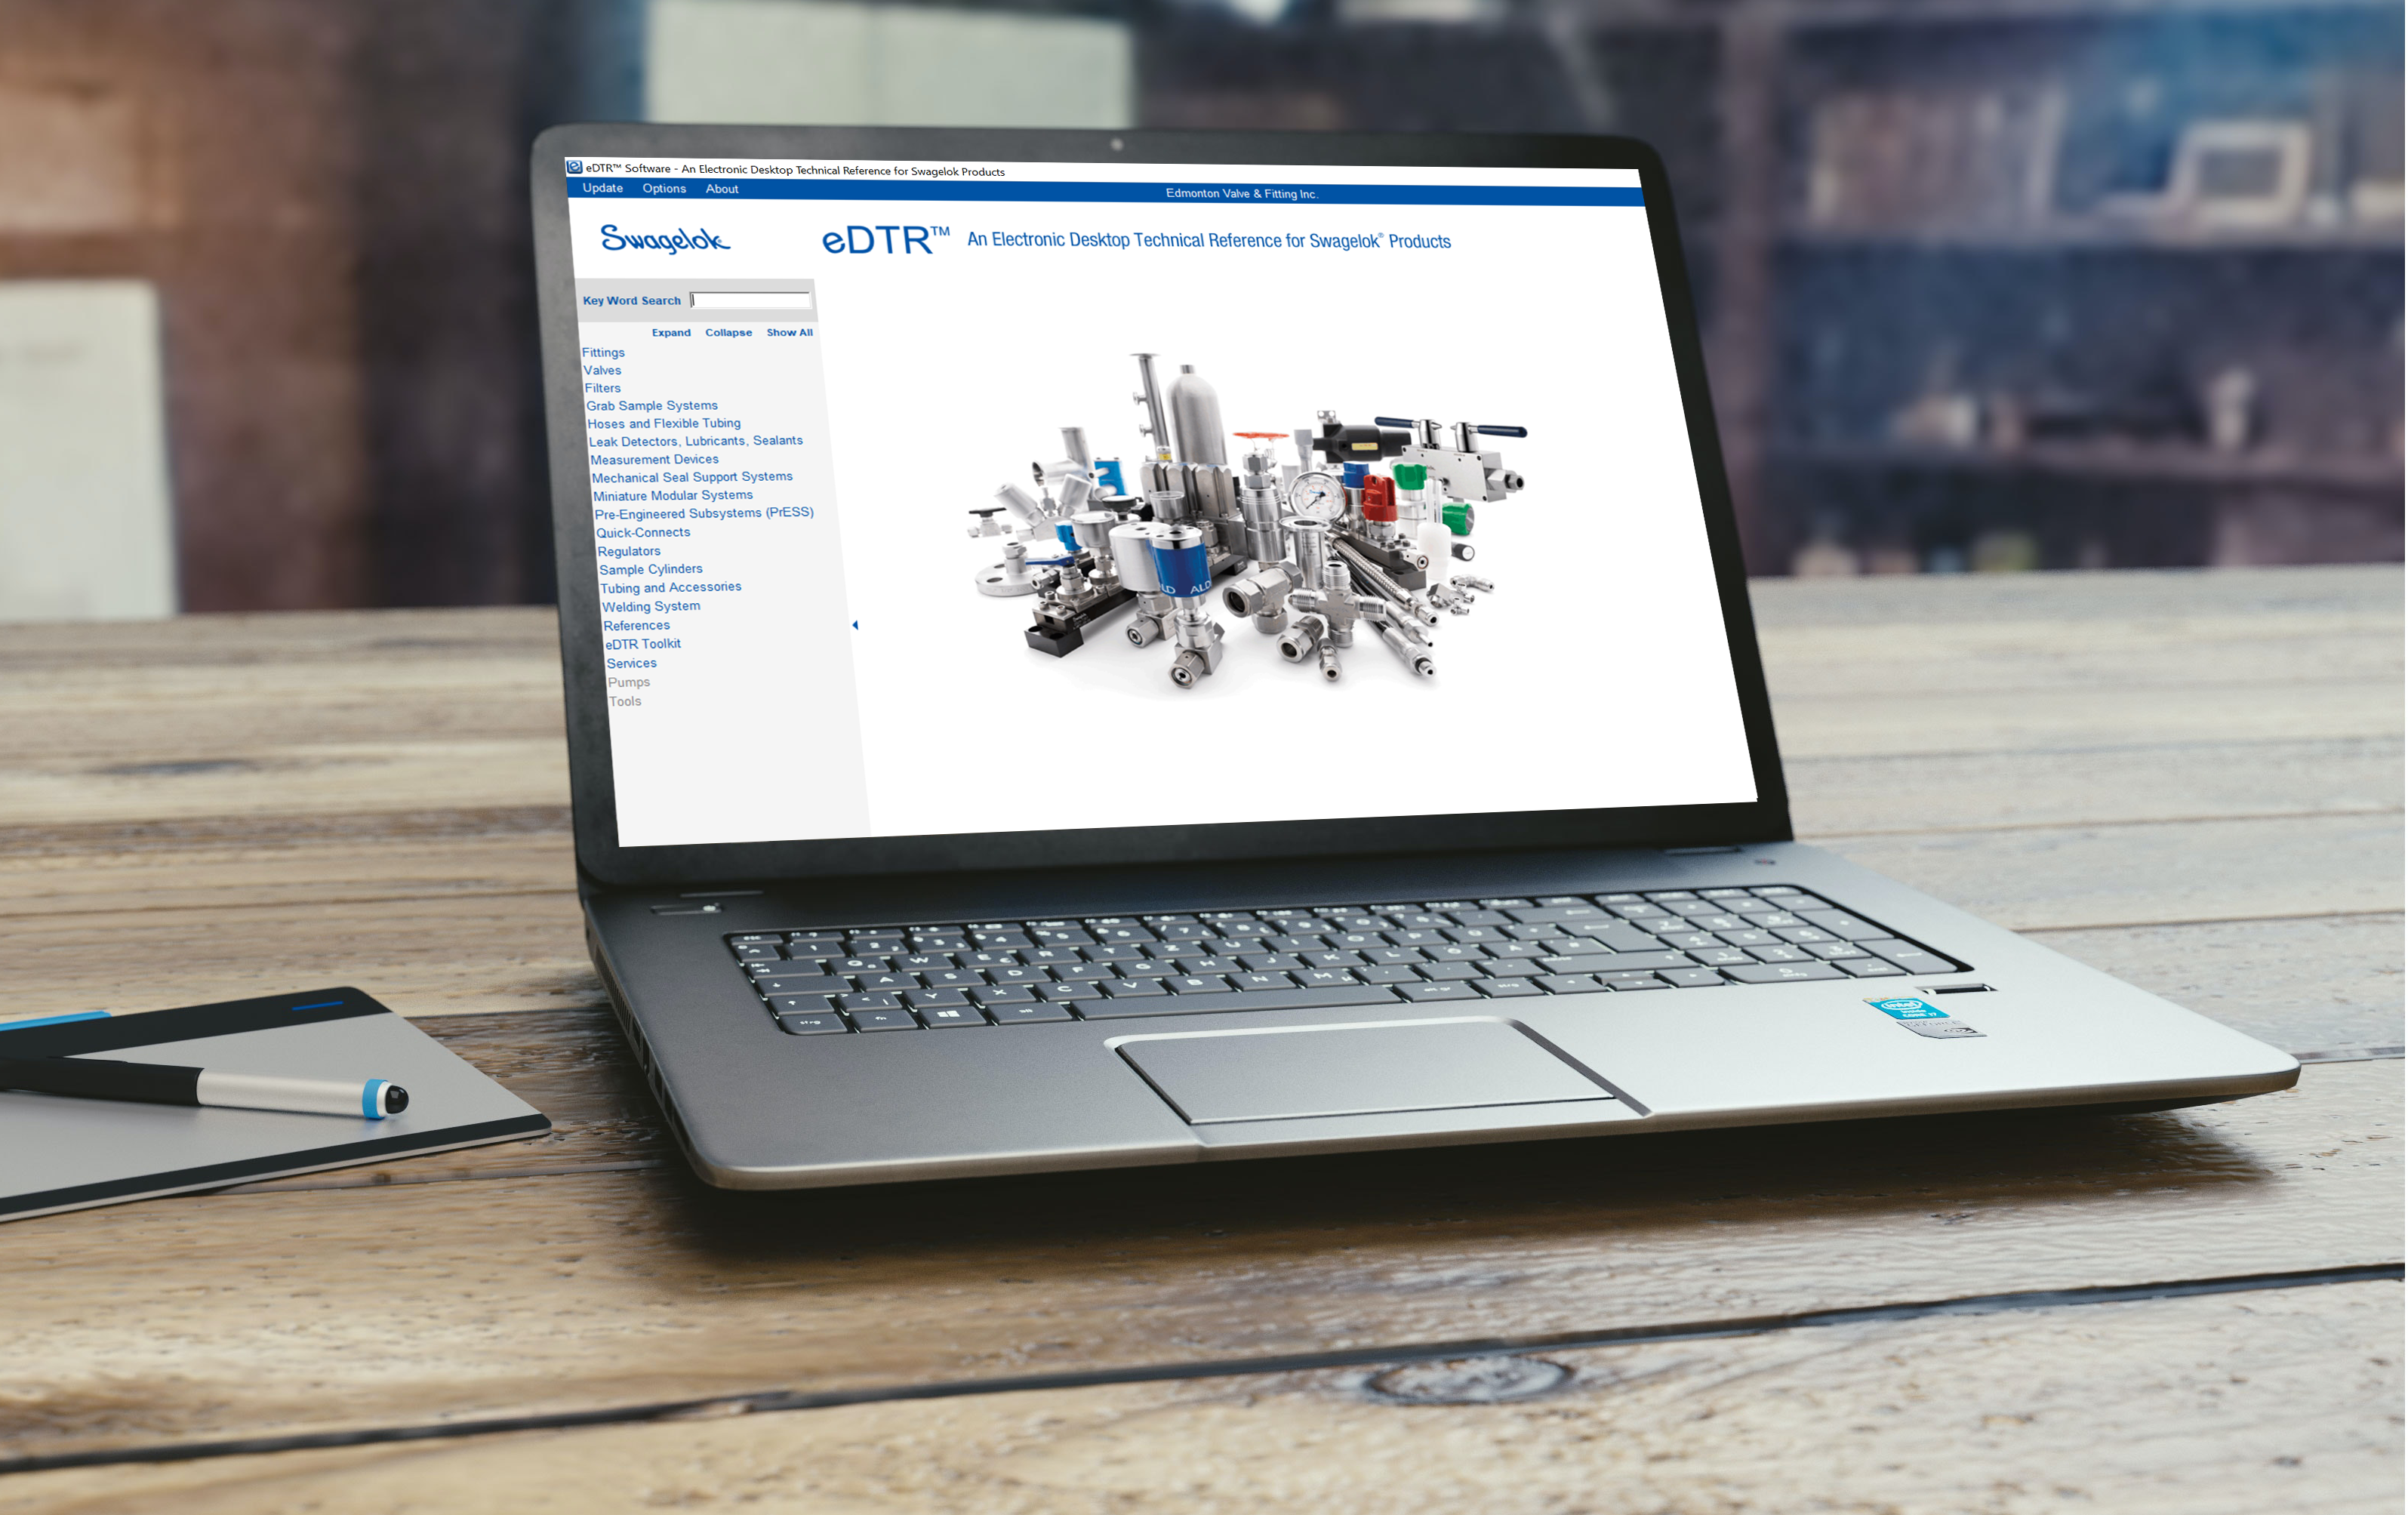 Our Electronic Desktop Technical Reference Software is Now Available for Download!